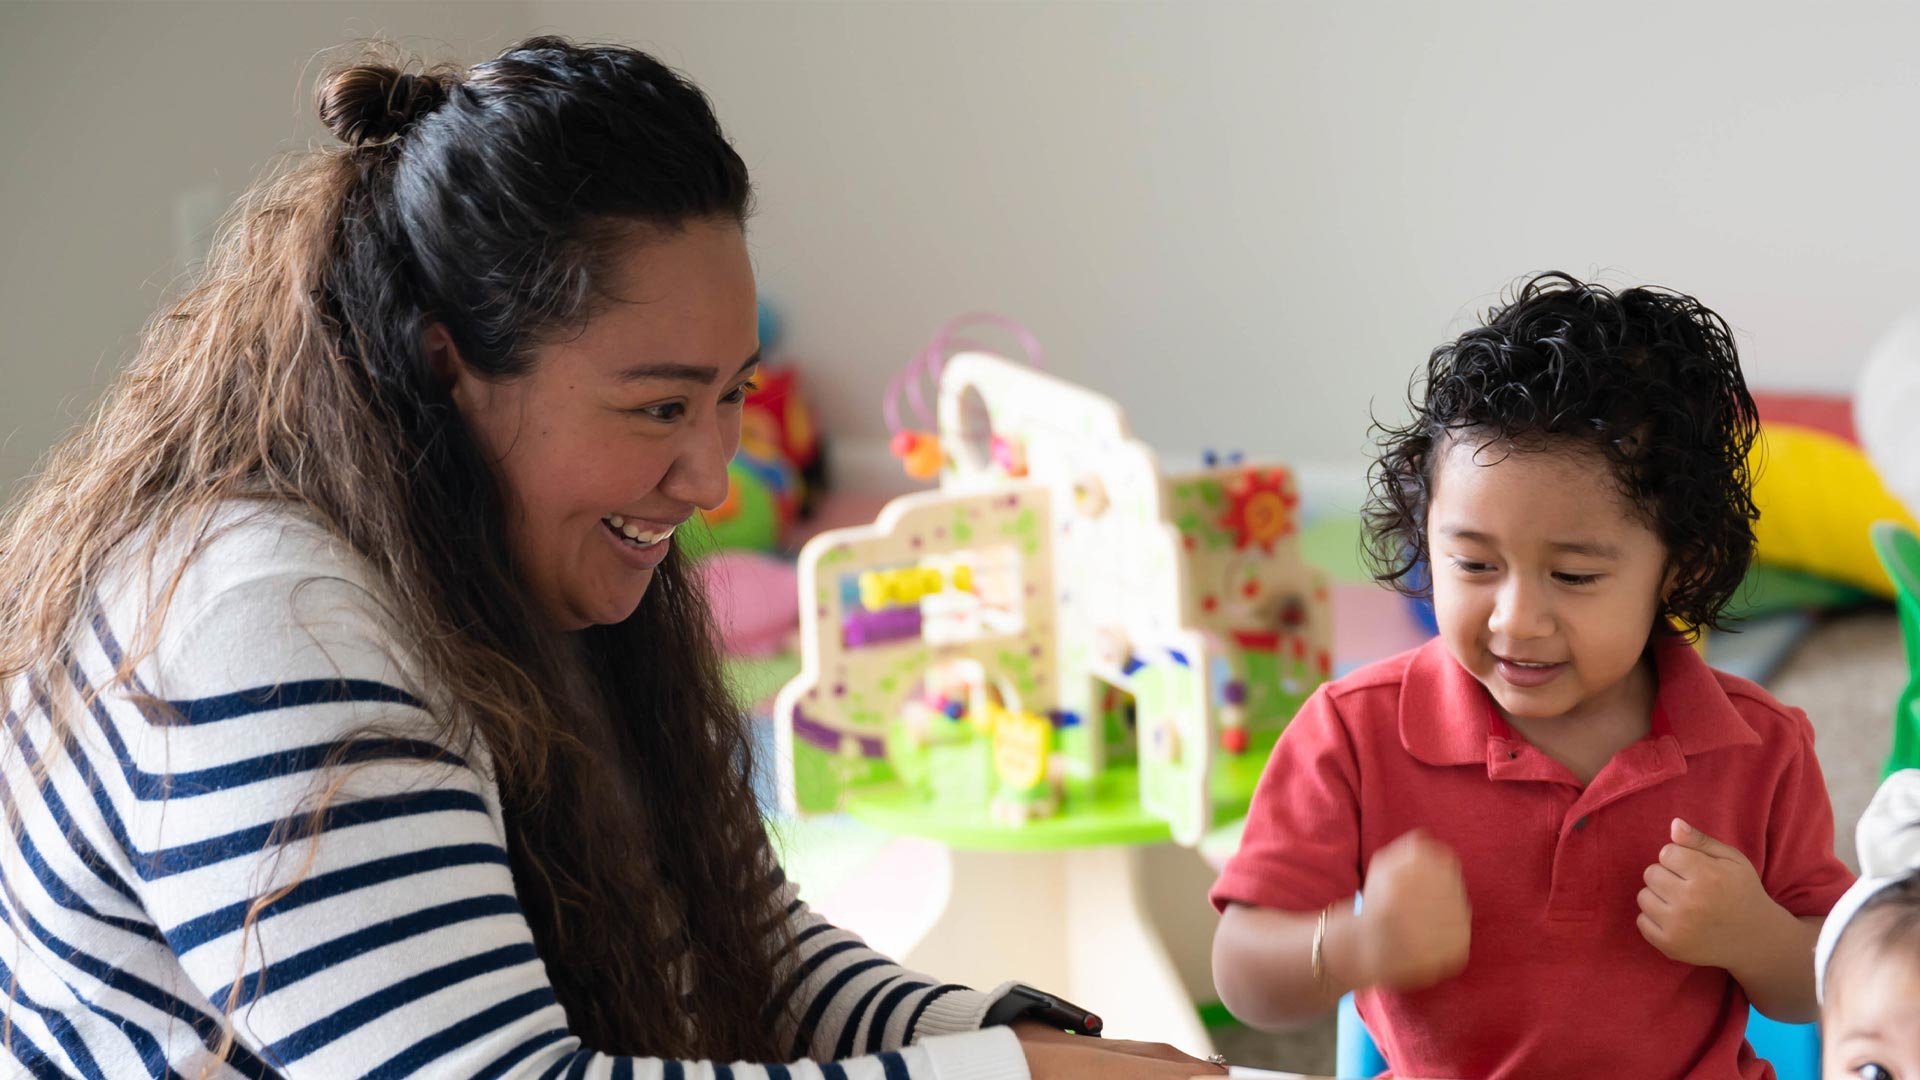 A woman provides child care in home